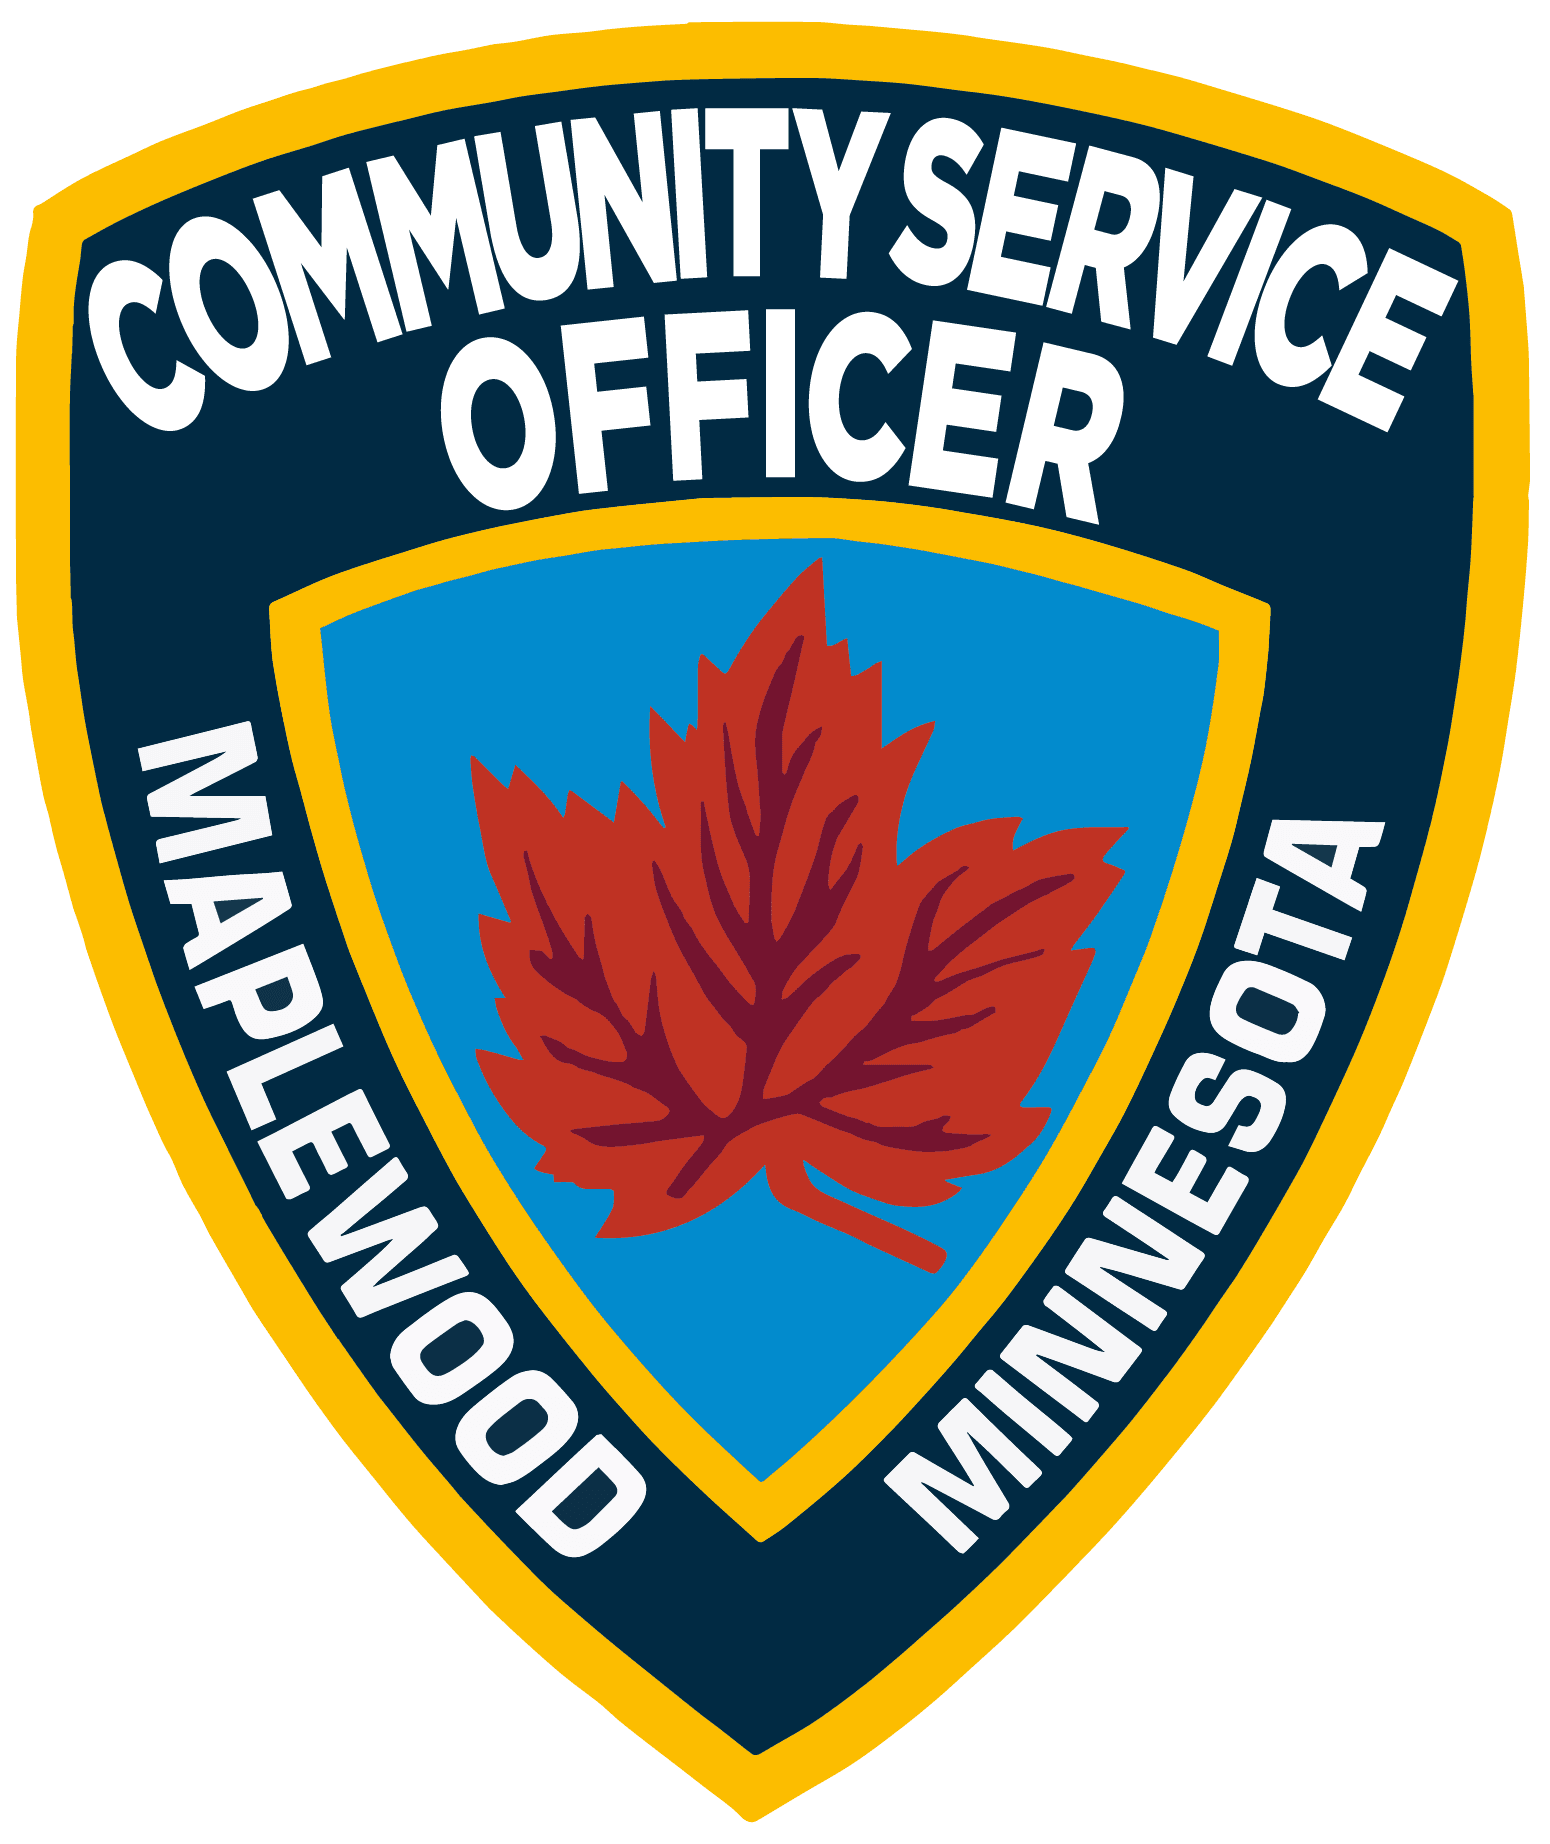 Community Service Officer Patch